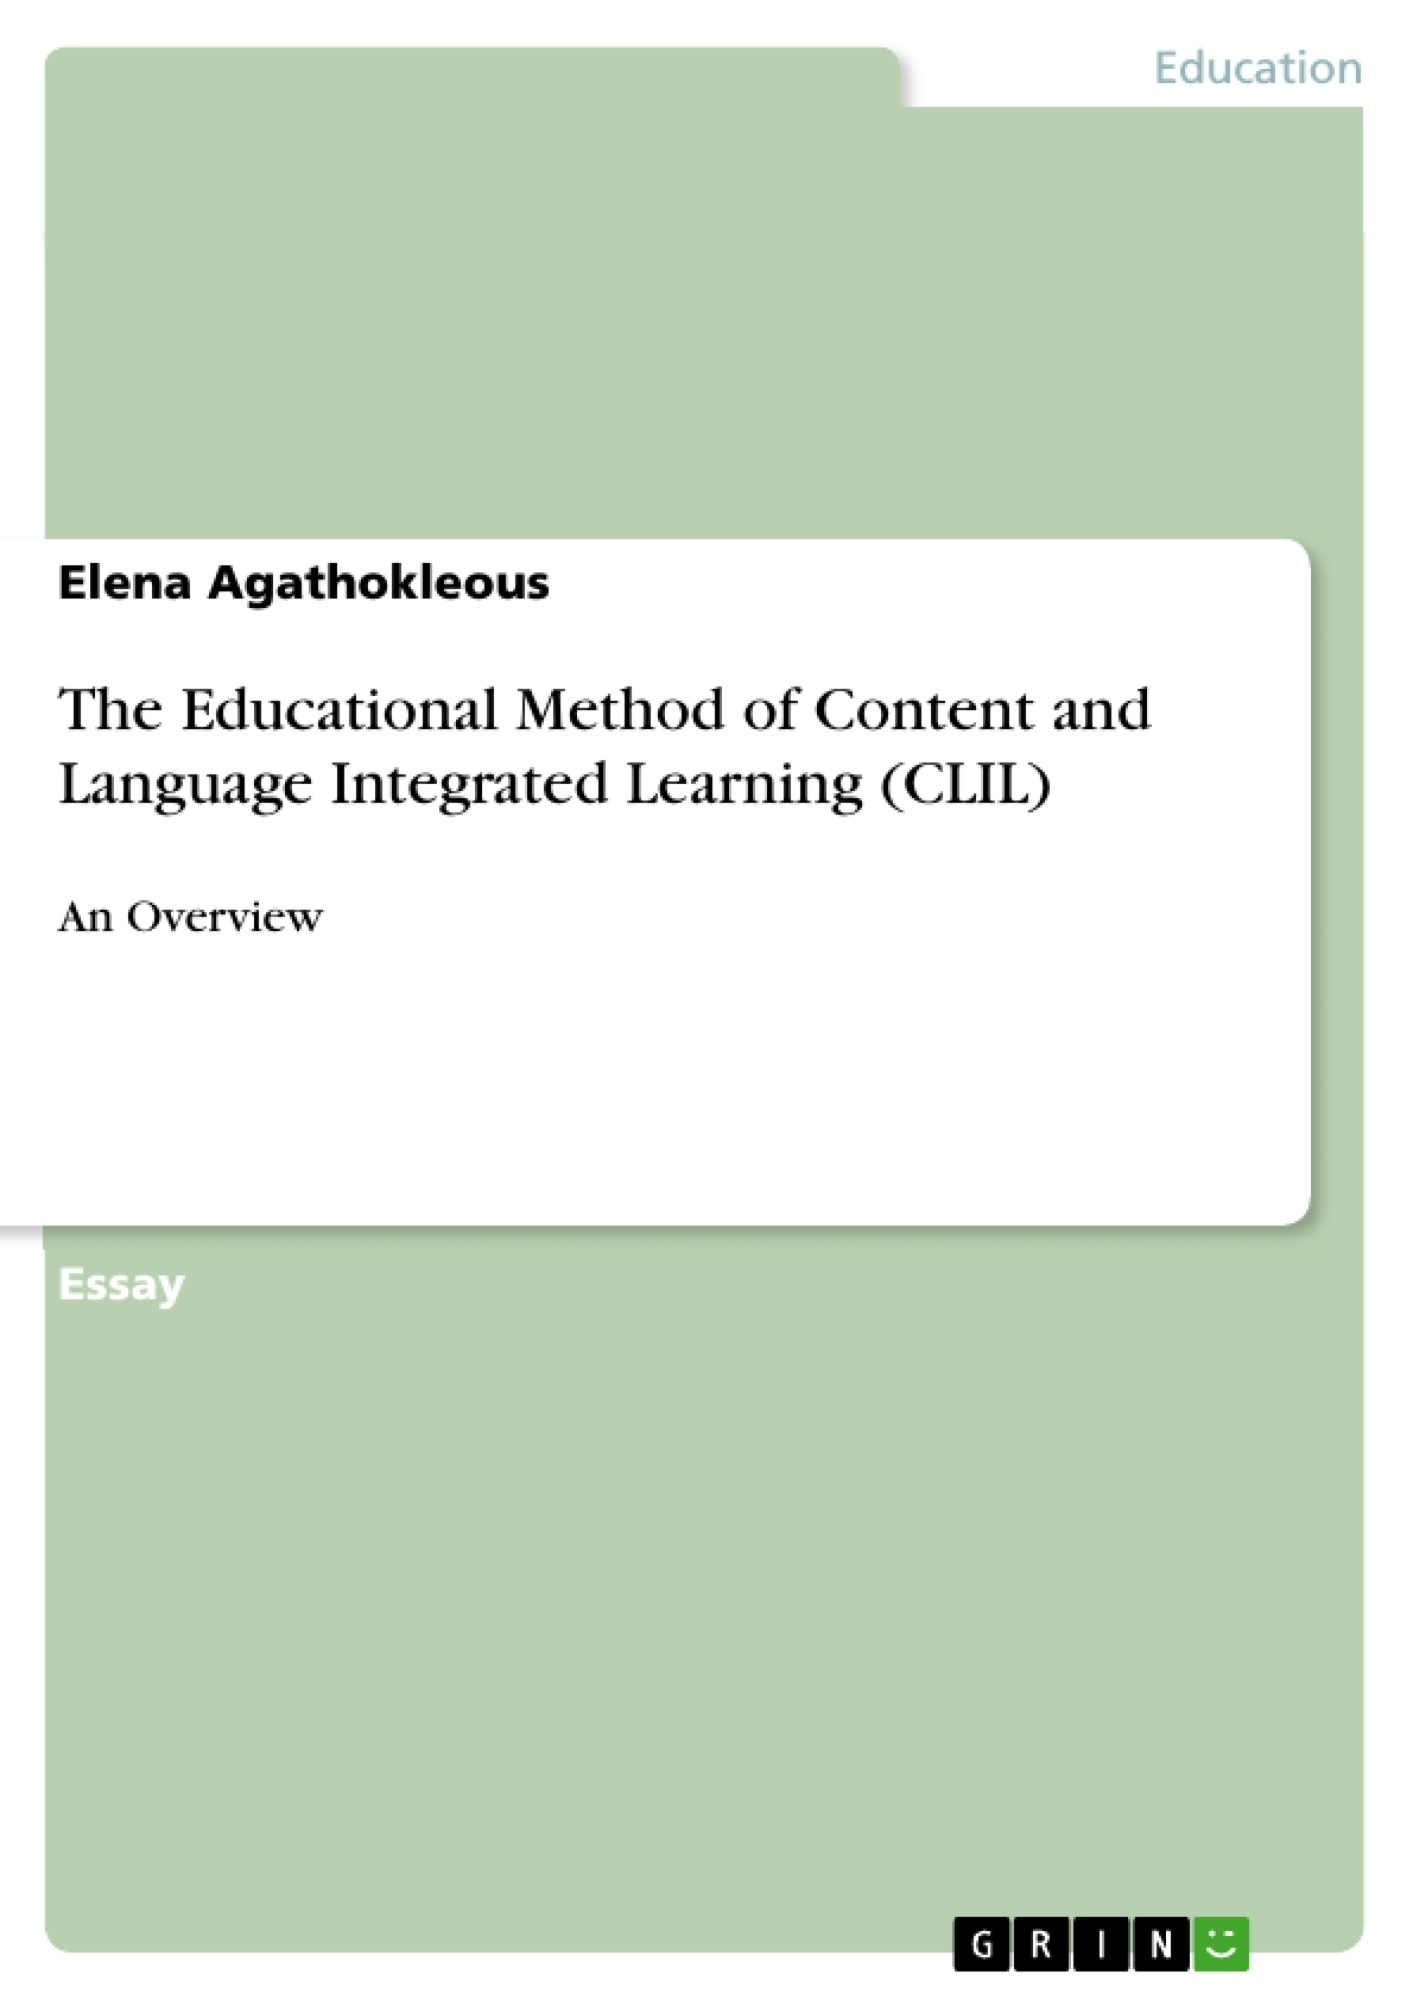 Title: The Educational Method of Content and Language Integrated Learning (CLIL)